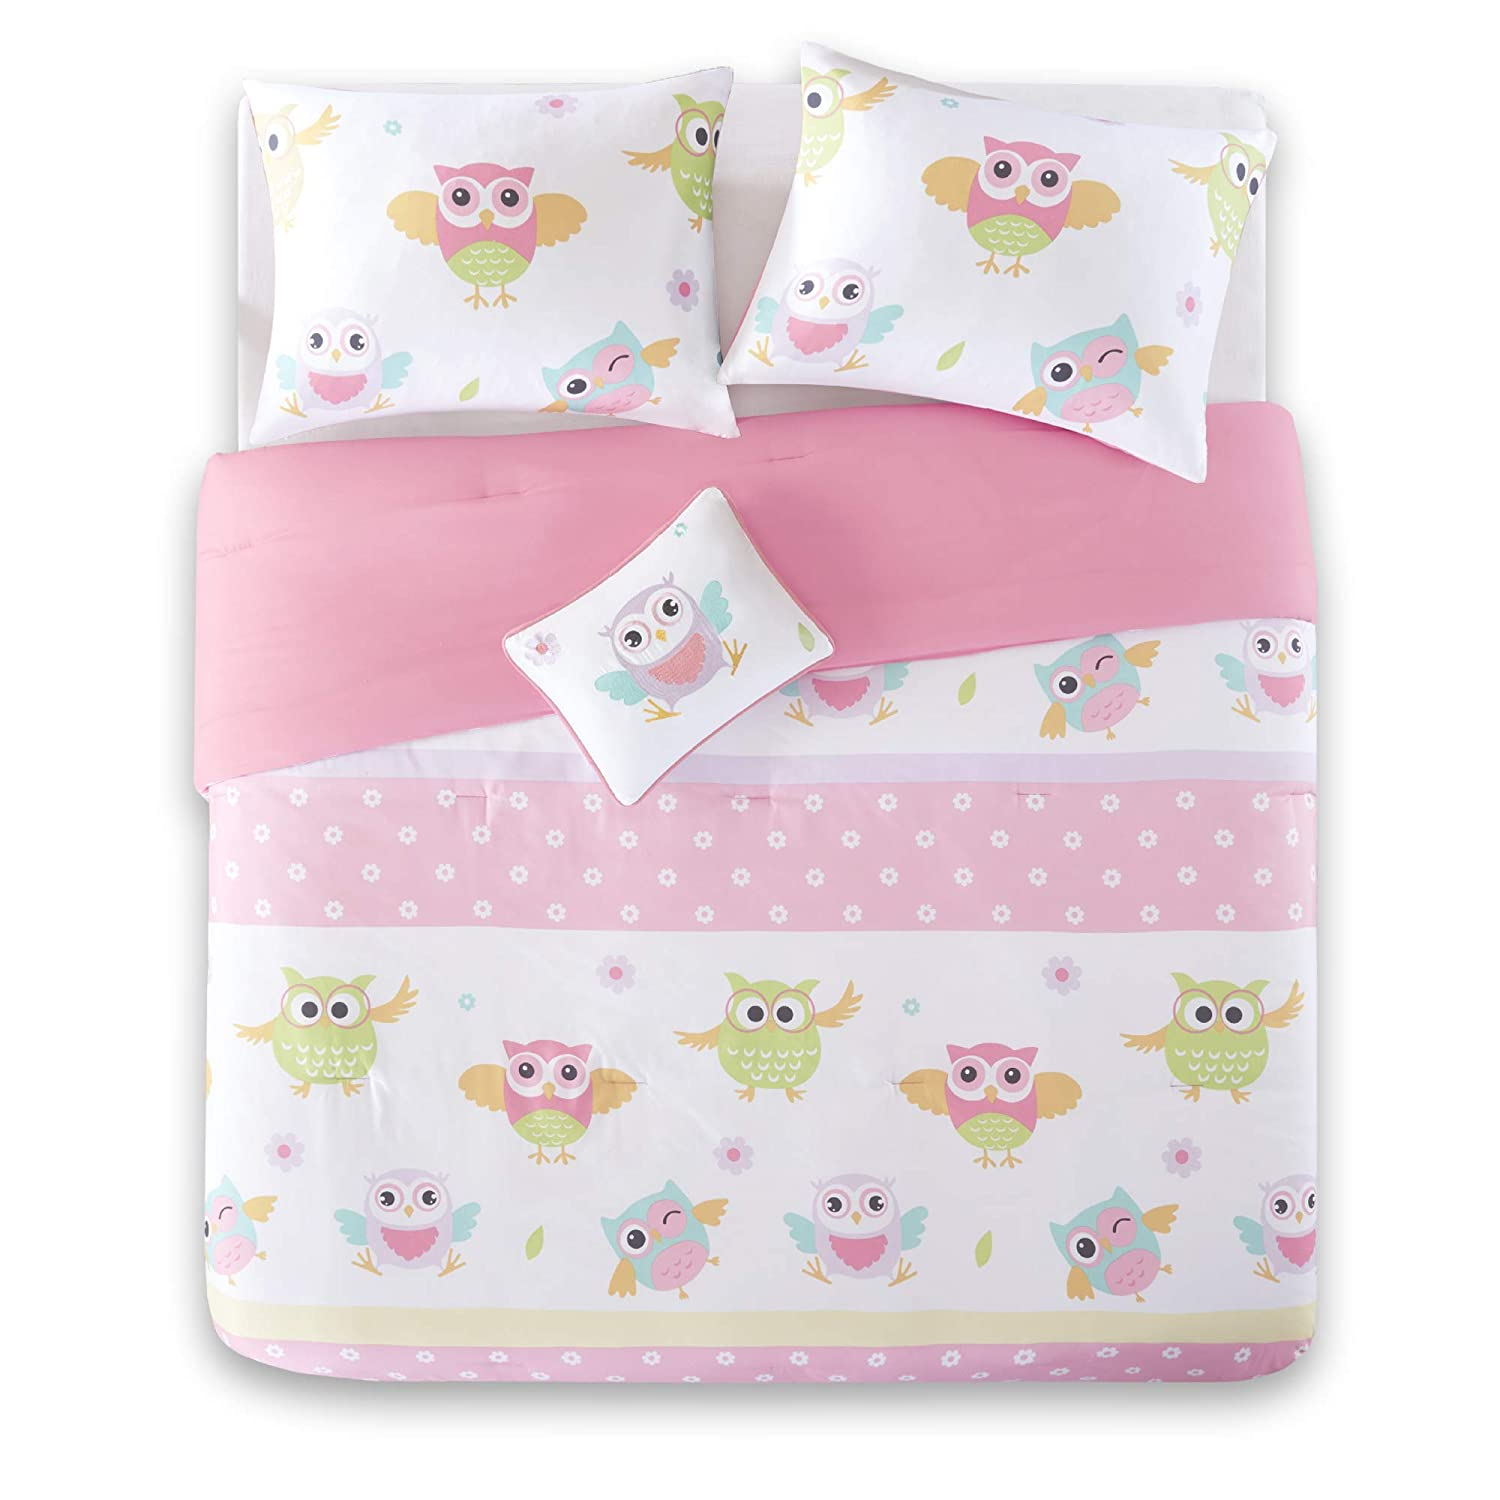 Comfort Spaces - Happy Daisy Kid Comforter Set - 3 Piece - Butterfly & Floral - Blue Pink - Twin/Twin XL Size, Includes 1 Comforter, 1 Sham, 1 Decorative Pillow